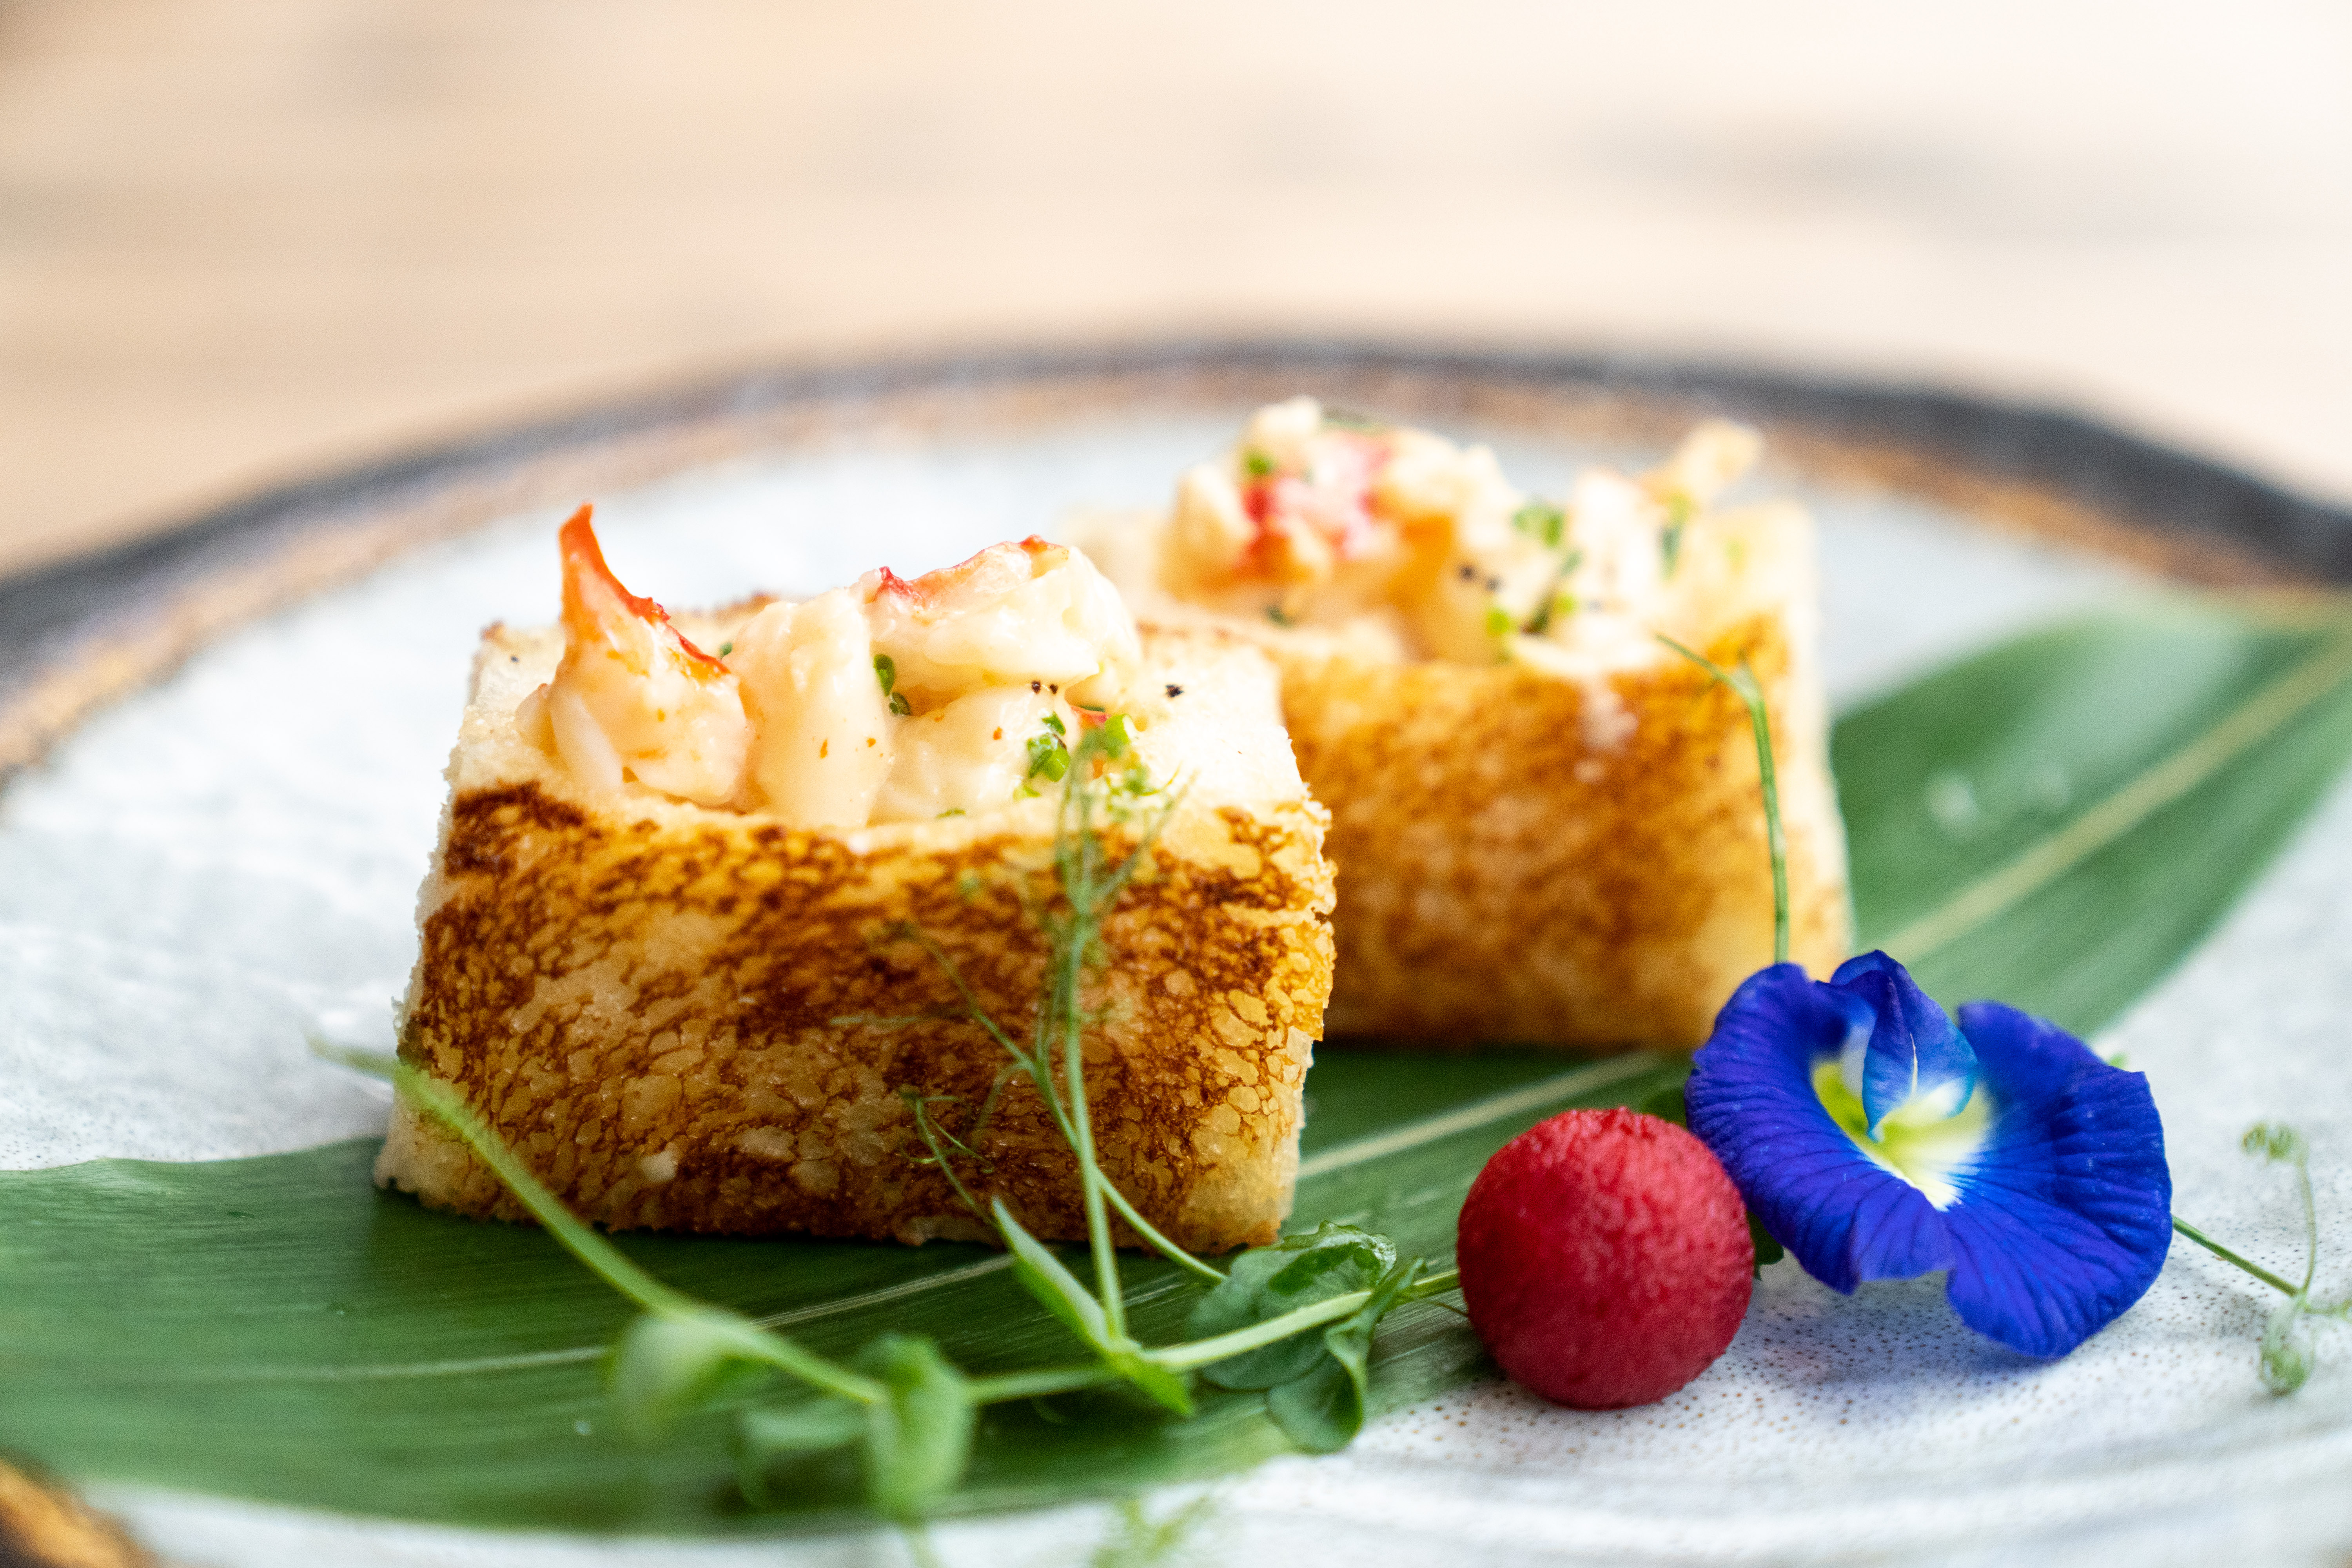 a japanese milk bread sandwich topped with lobster and served alongside greens and ornamental flowers